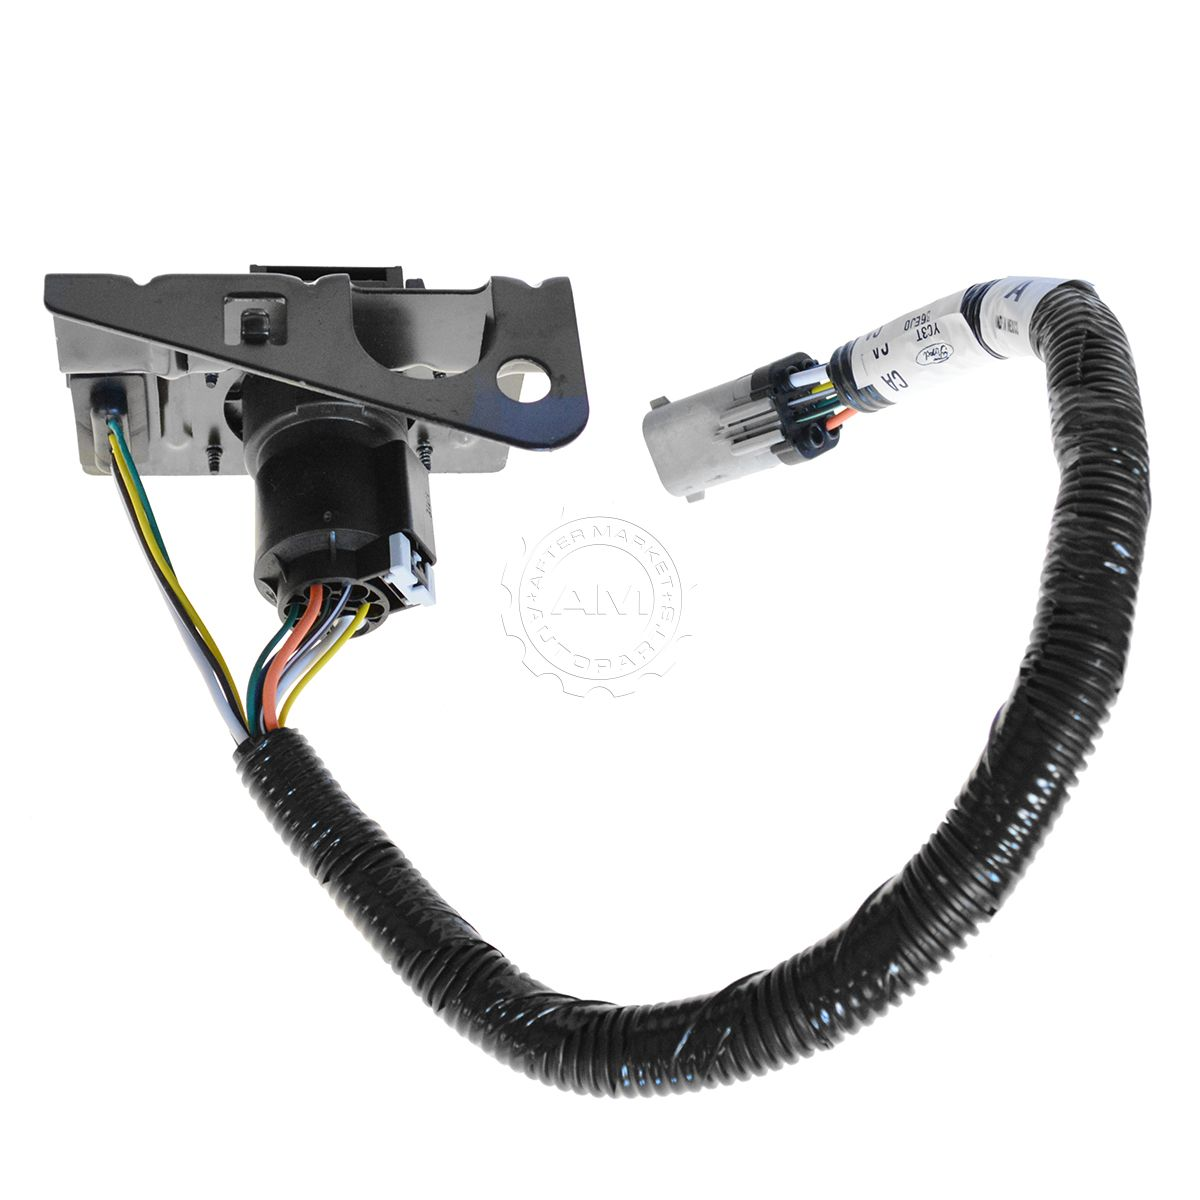 ford 4 7 pin trailer tow wiring harness w plug bracket for f250 rh ebay com ford 7 pin trailer wiring color code ford f150 7 pin trailer wiring